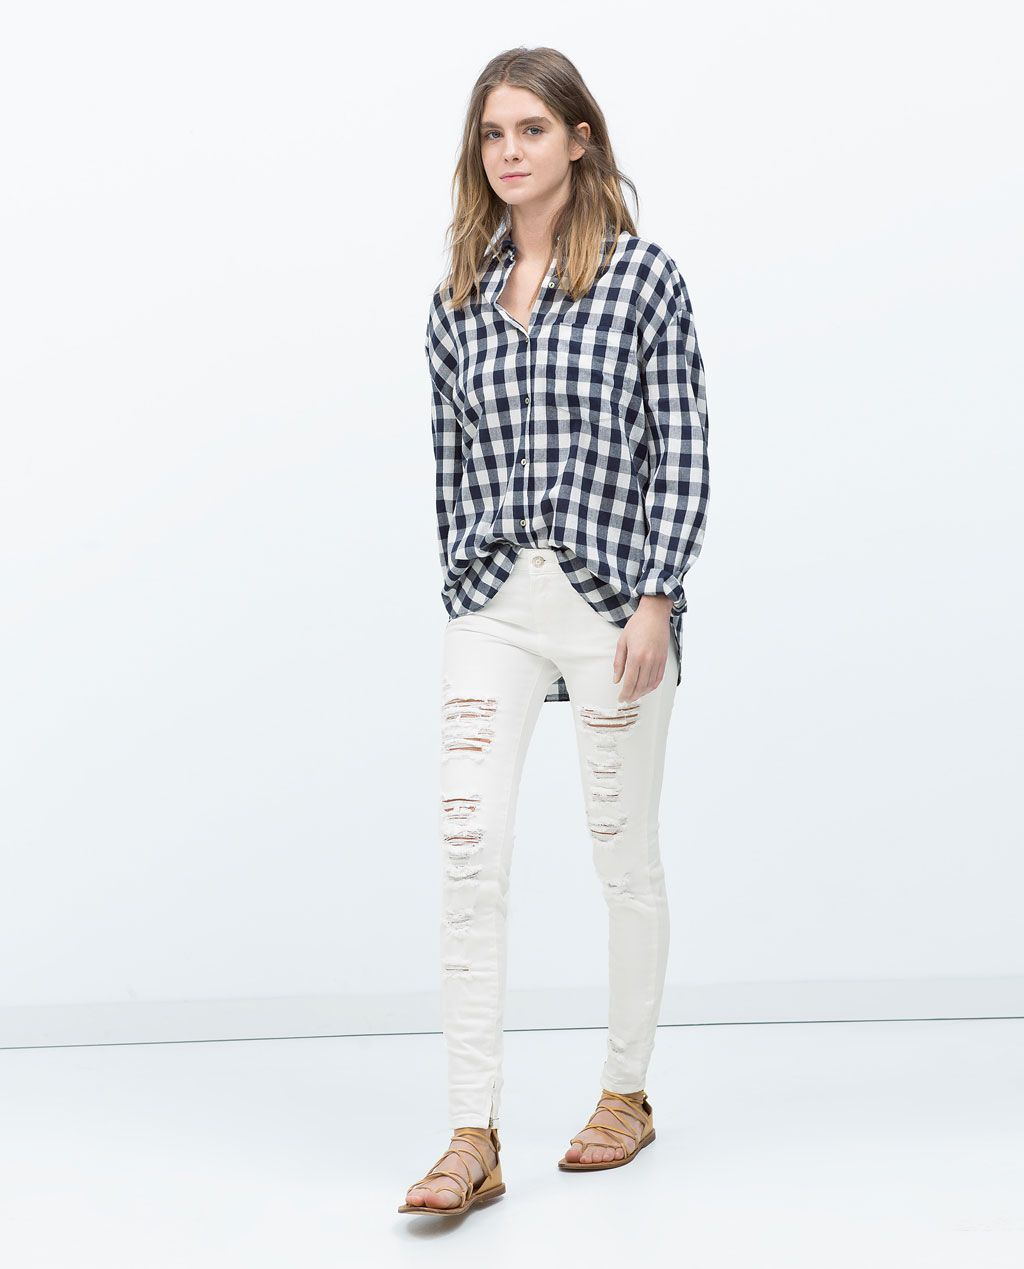 846c1e19ae28b ZARA - TRF - GINGHAM SHIRT WITH FRONT POCKETS Cute black and white check  shirt look with ripped white jeans